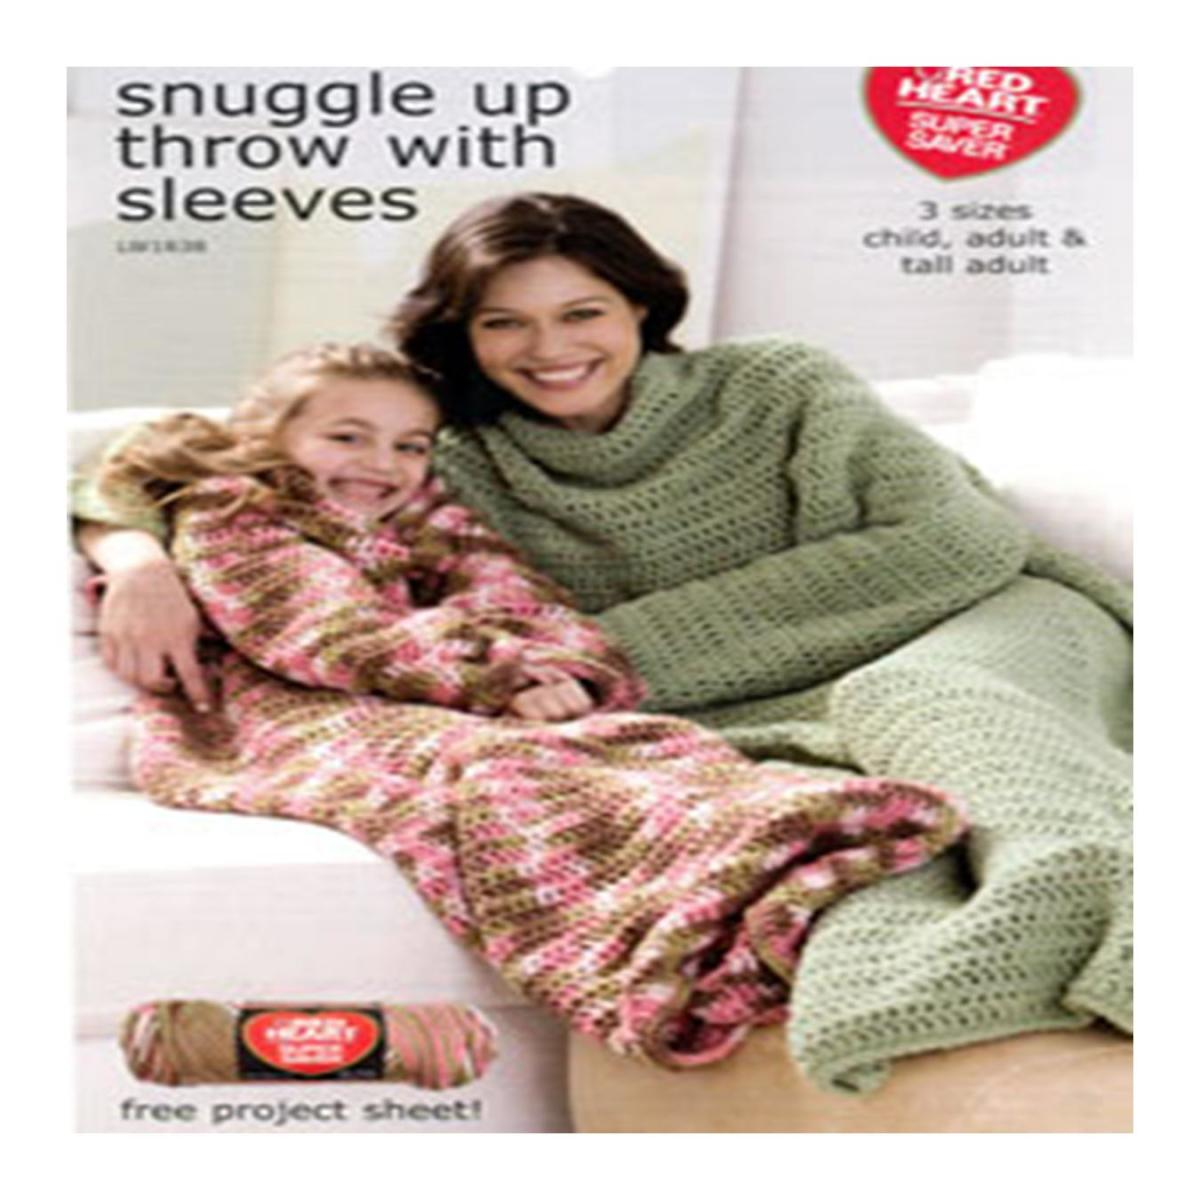 Snuggle up throw with sleeves